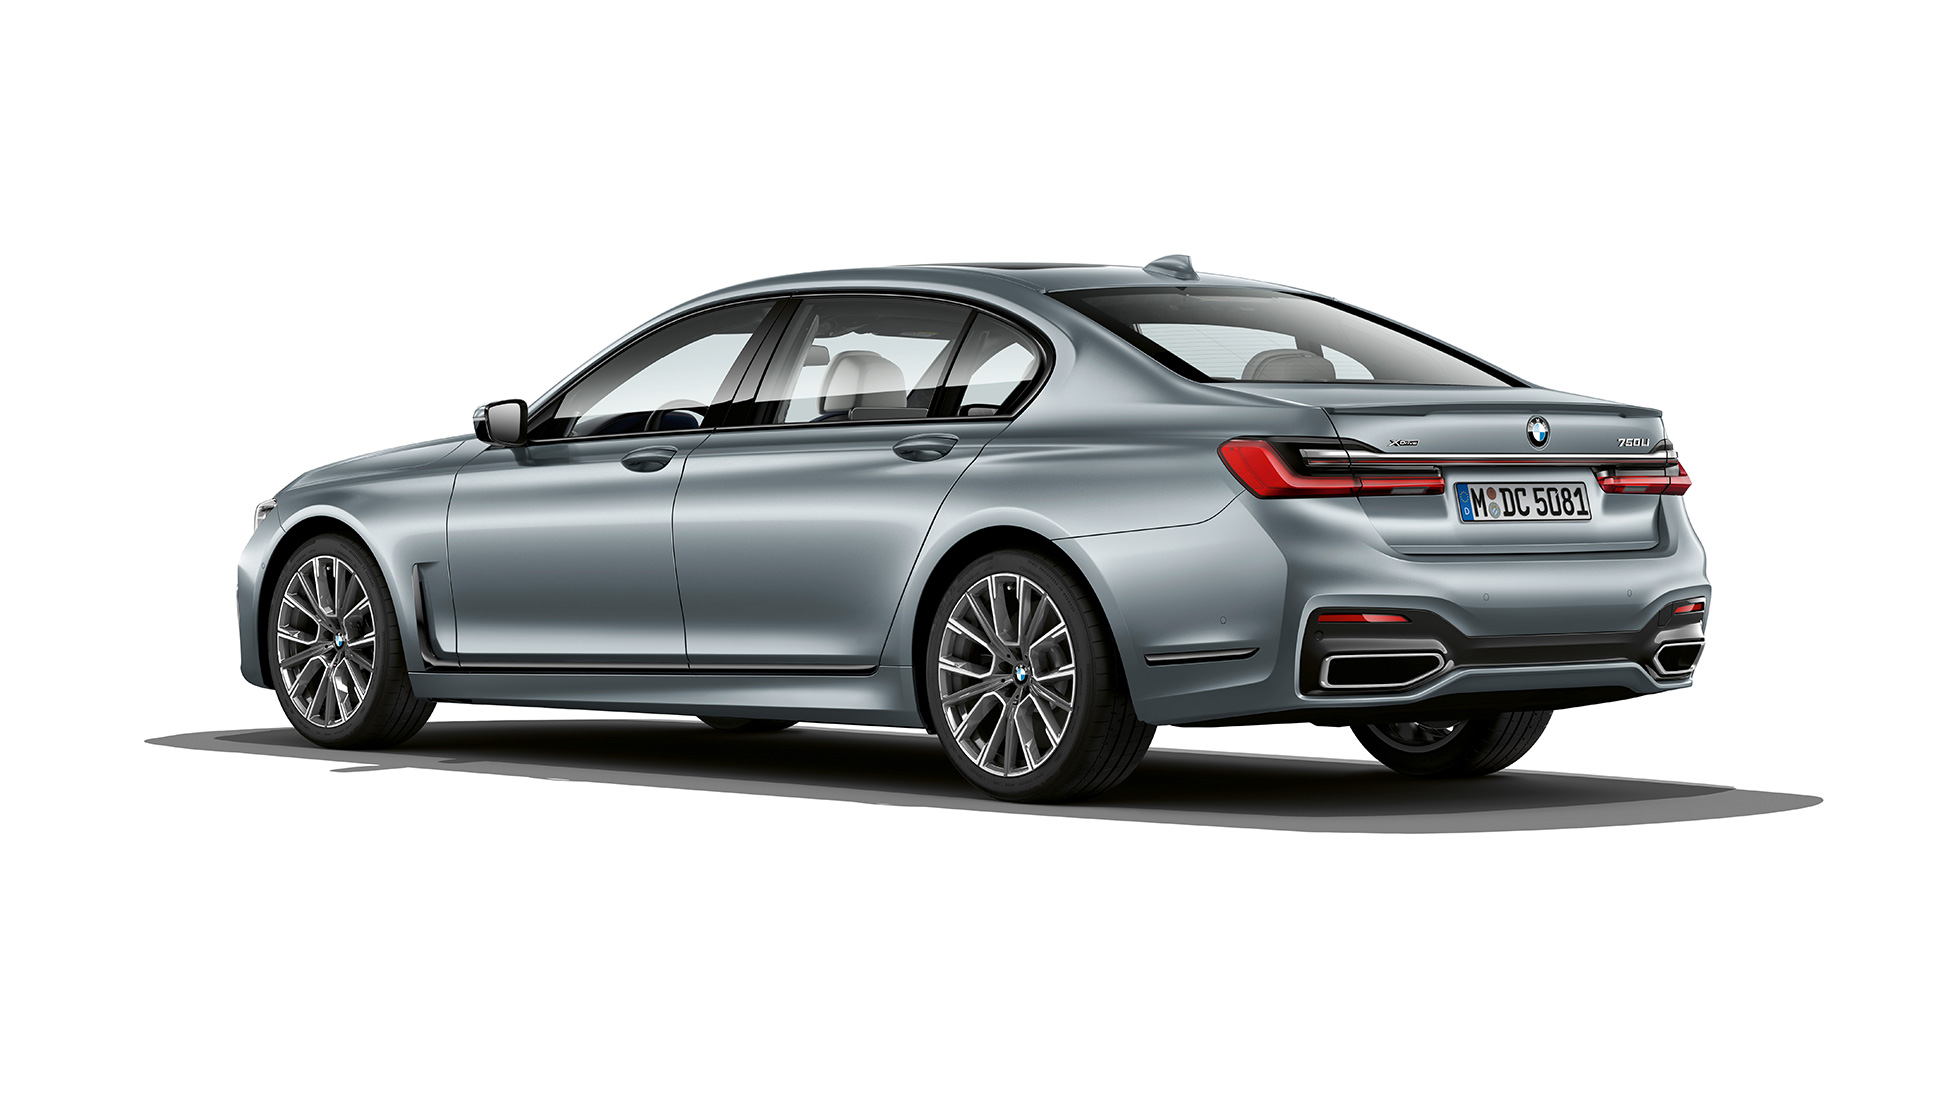 Grey BMW 7 Series Sedan M Sport package in three-quarter rear view